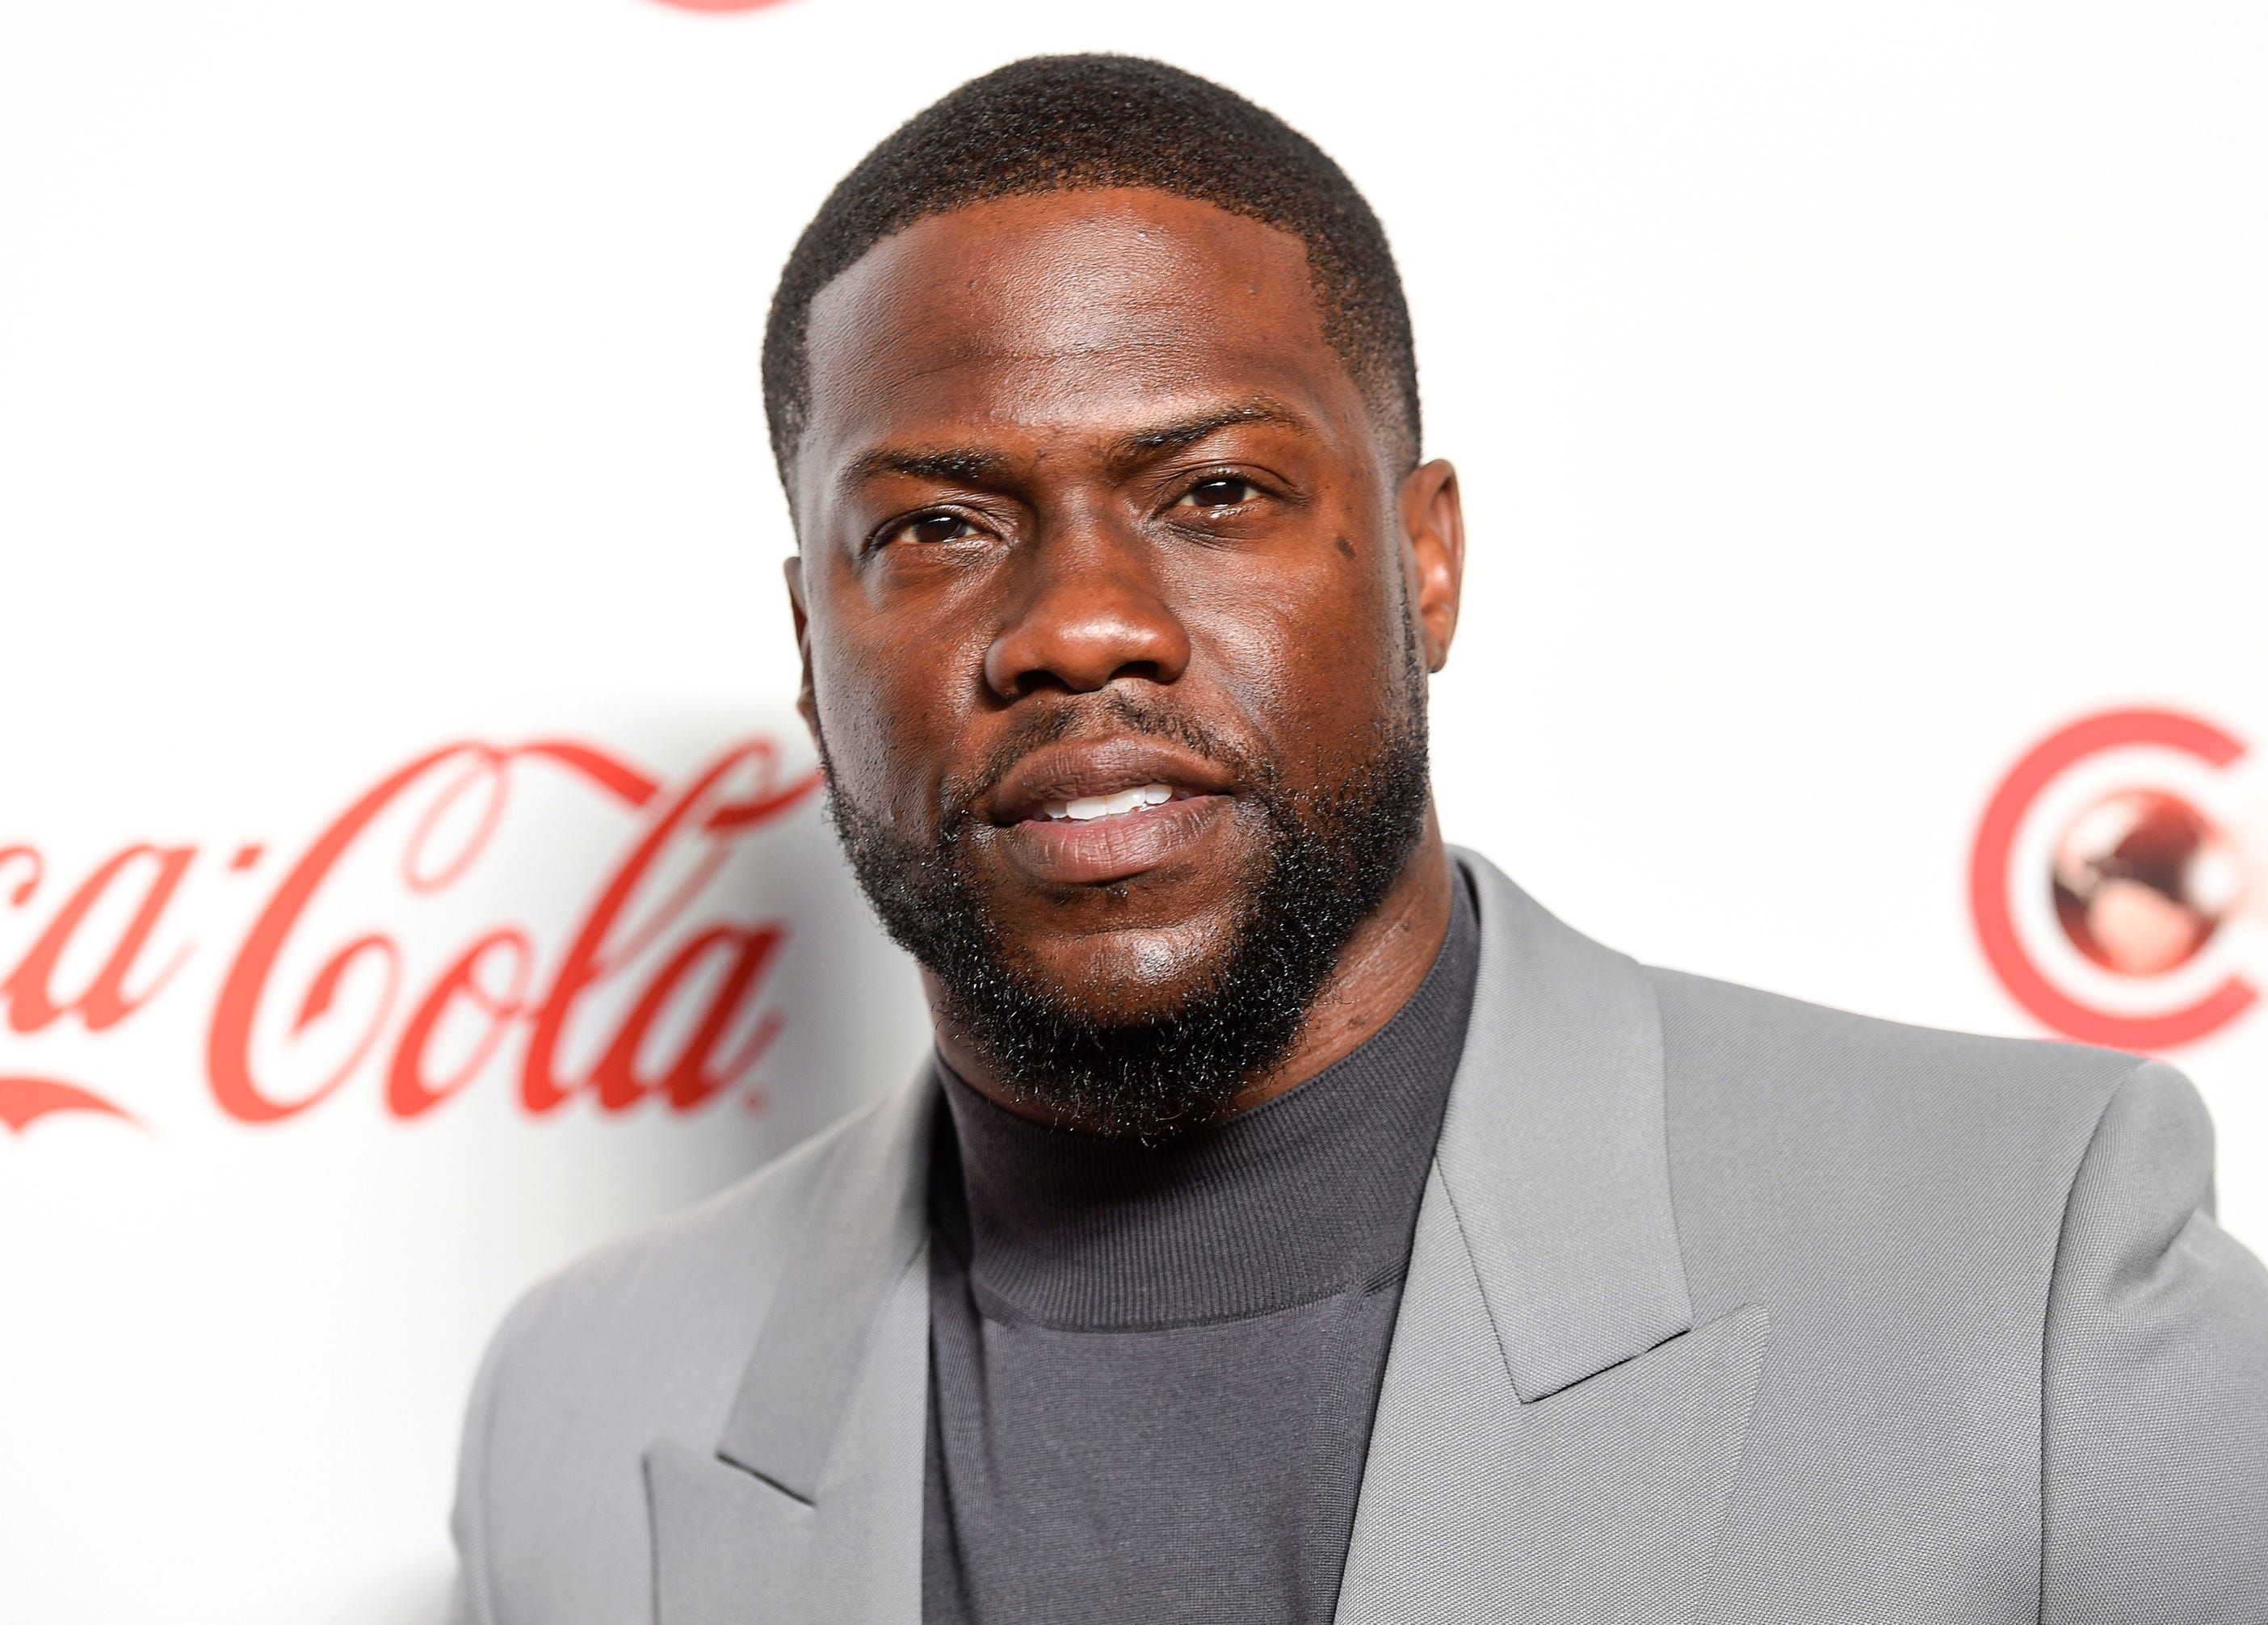 Kevin Hart Comedy Movies 2020